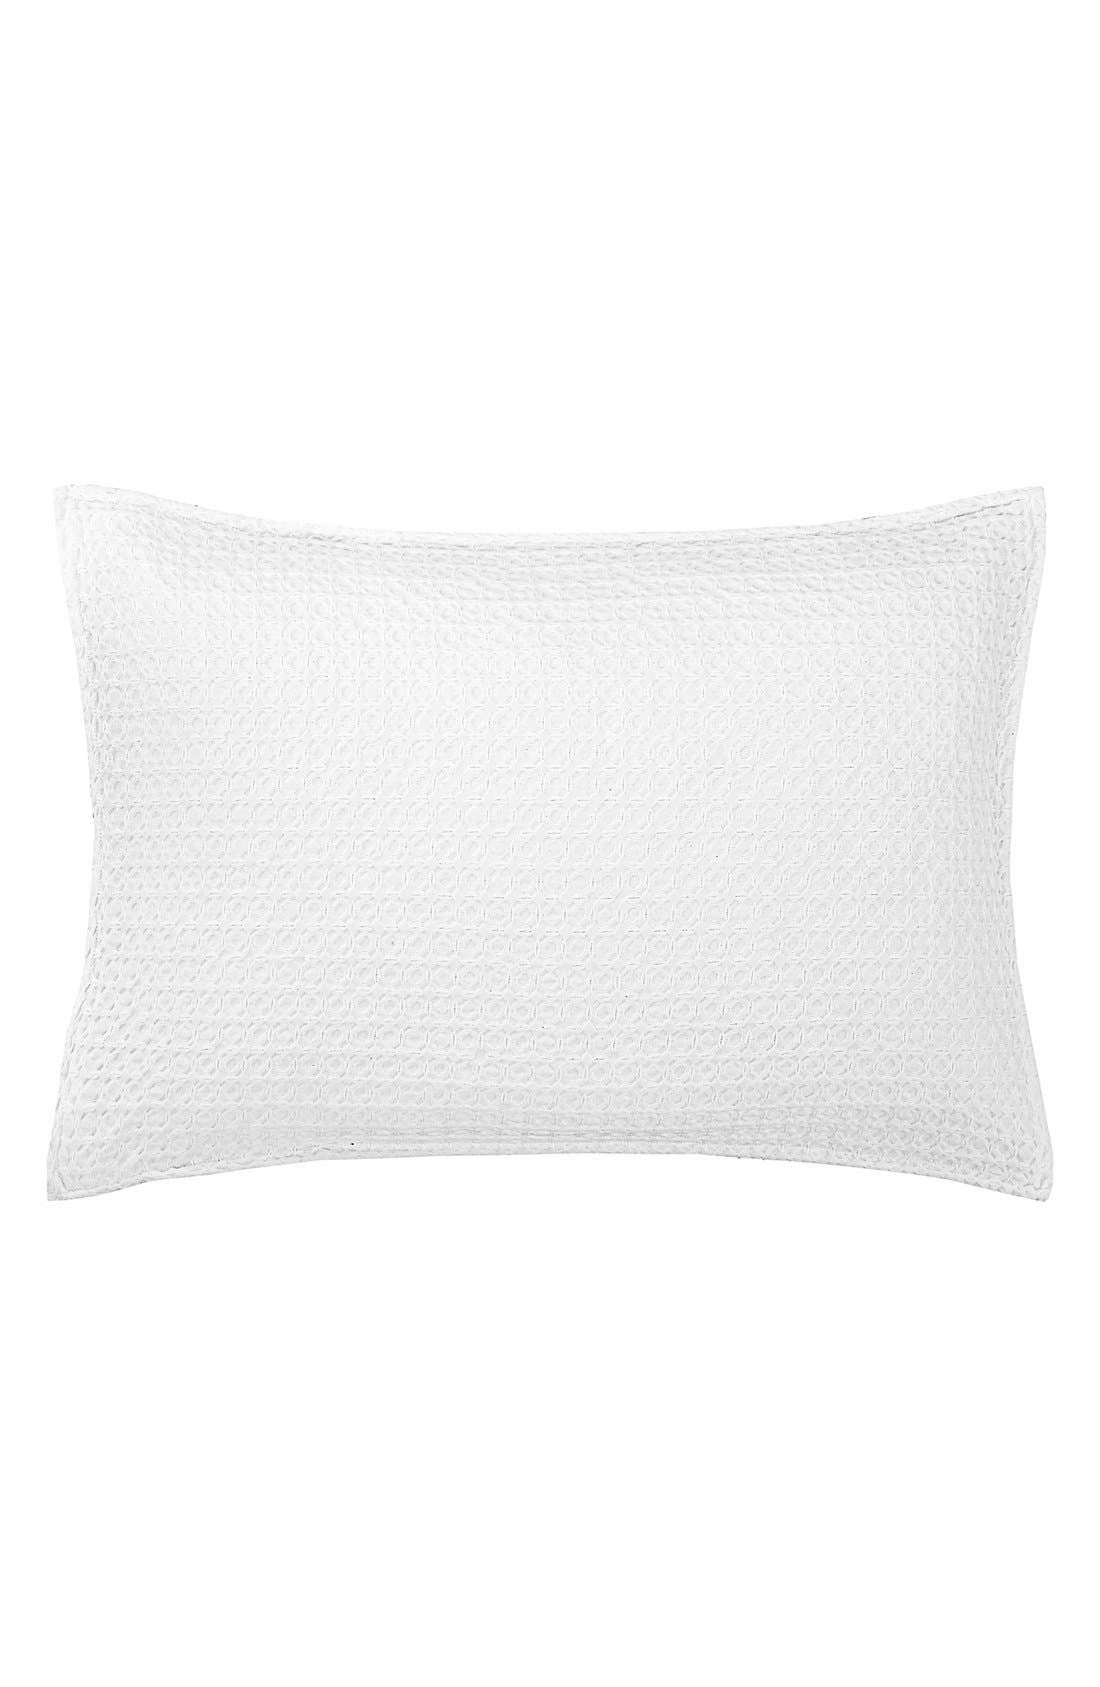 Paloma Sham,                             Main thumbnail 1, color,                             White